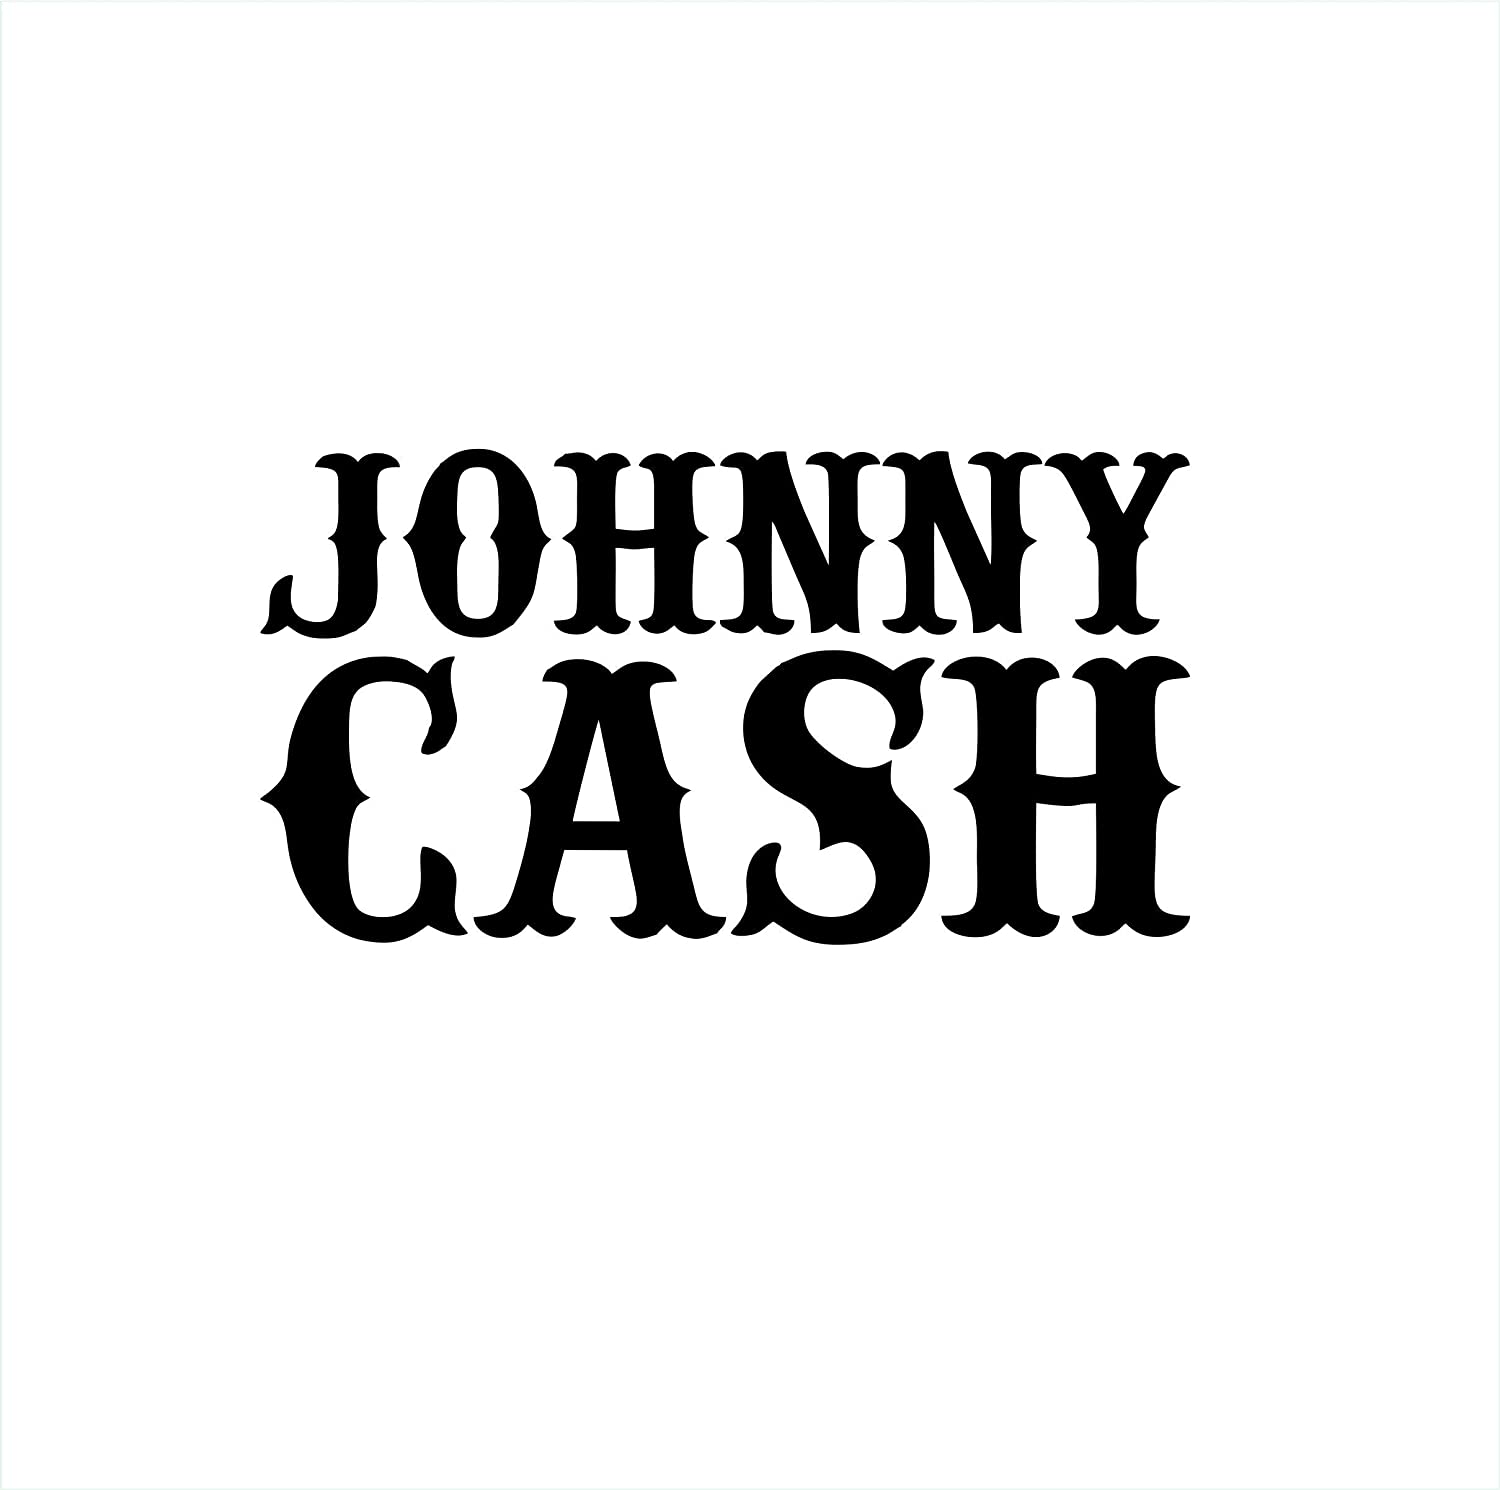 Johnny Cash Music Band Vinyl Die Cut Car Decal Sticker